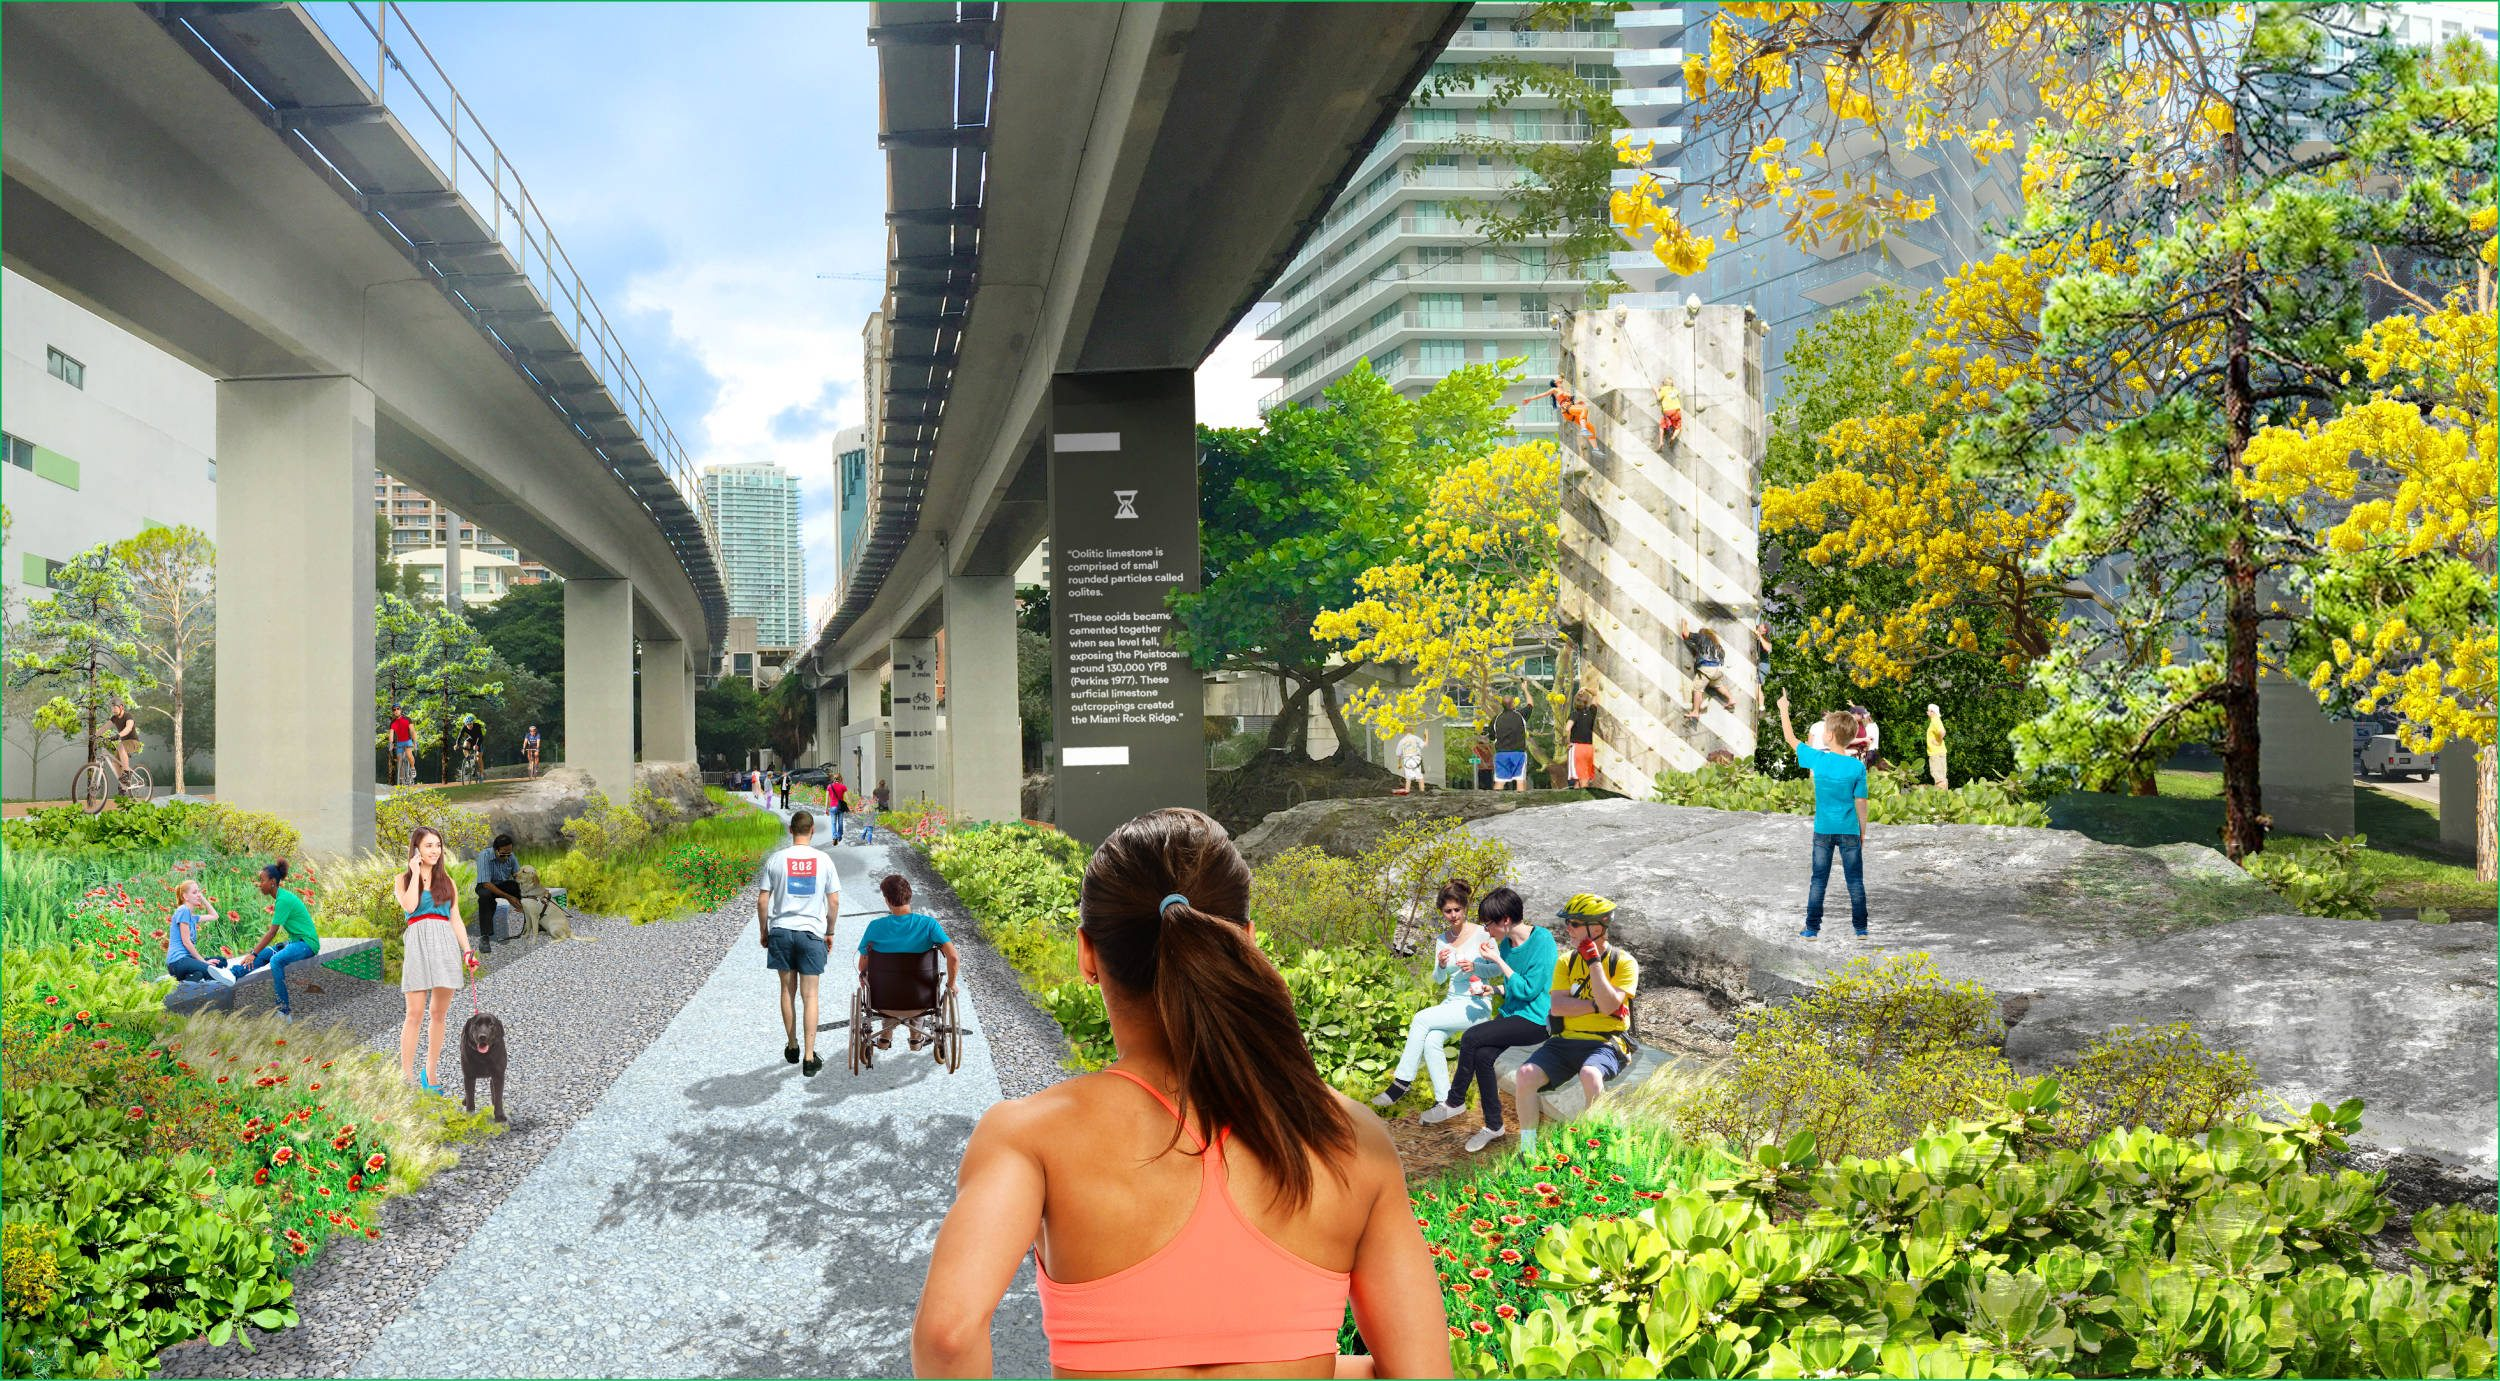 Underline Park at Brickell Station